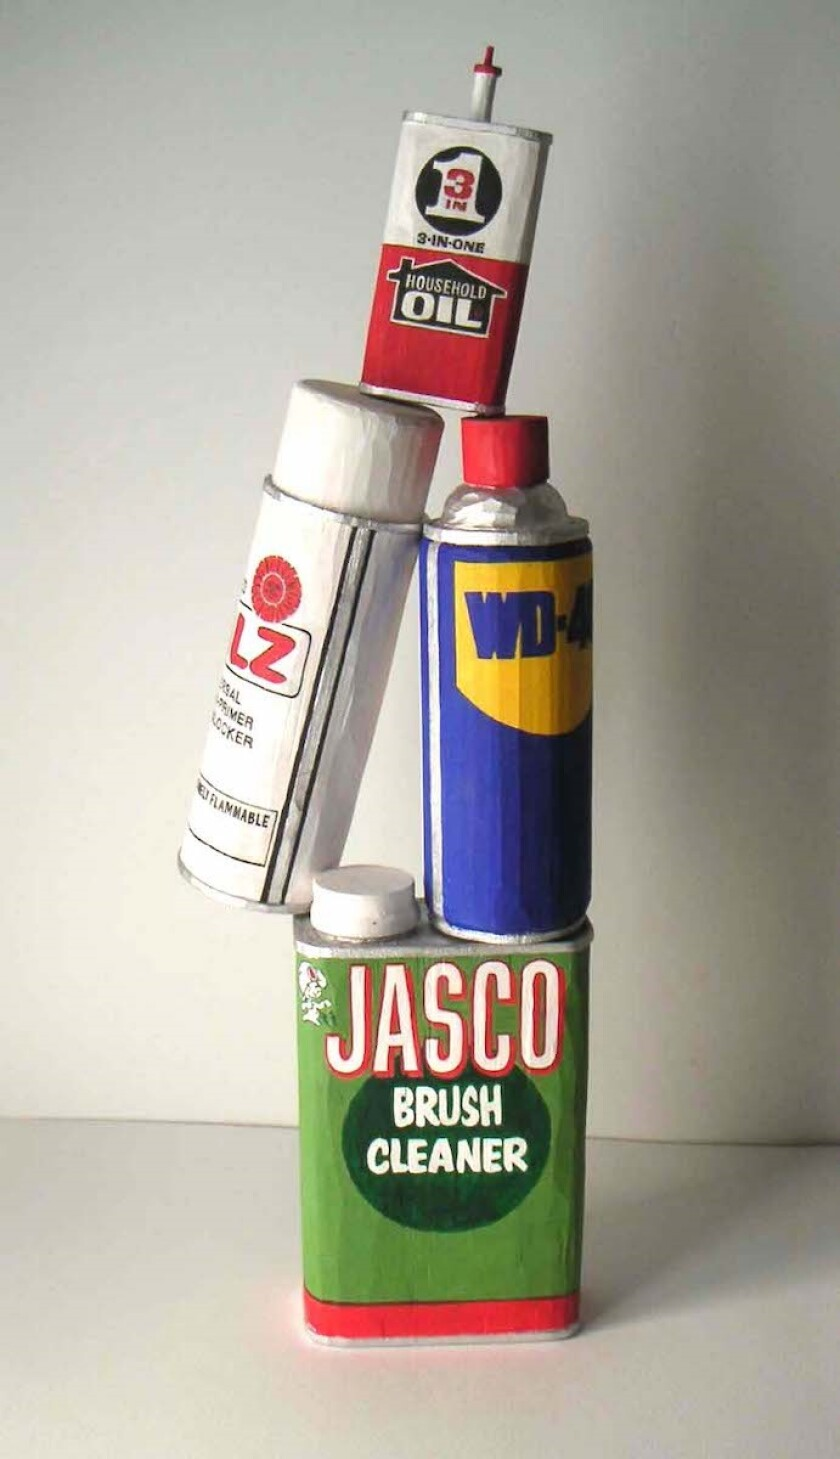 """WD-40..."" by Robert Levine, 2009. Acrylic on wood, 20 inches by 6.5 inches by 3.5 inches"